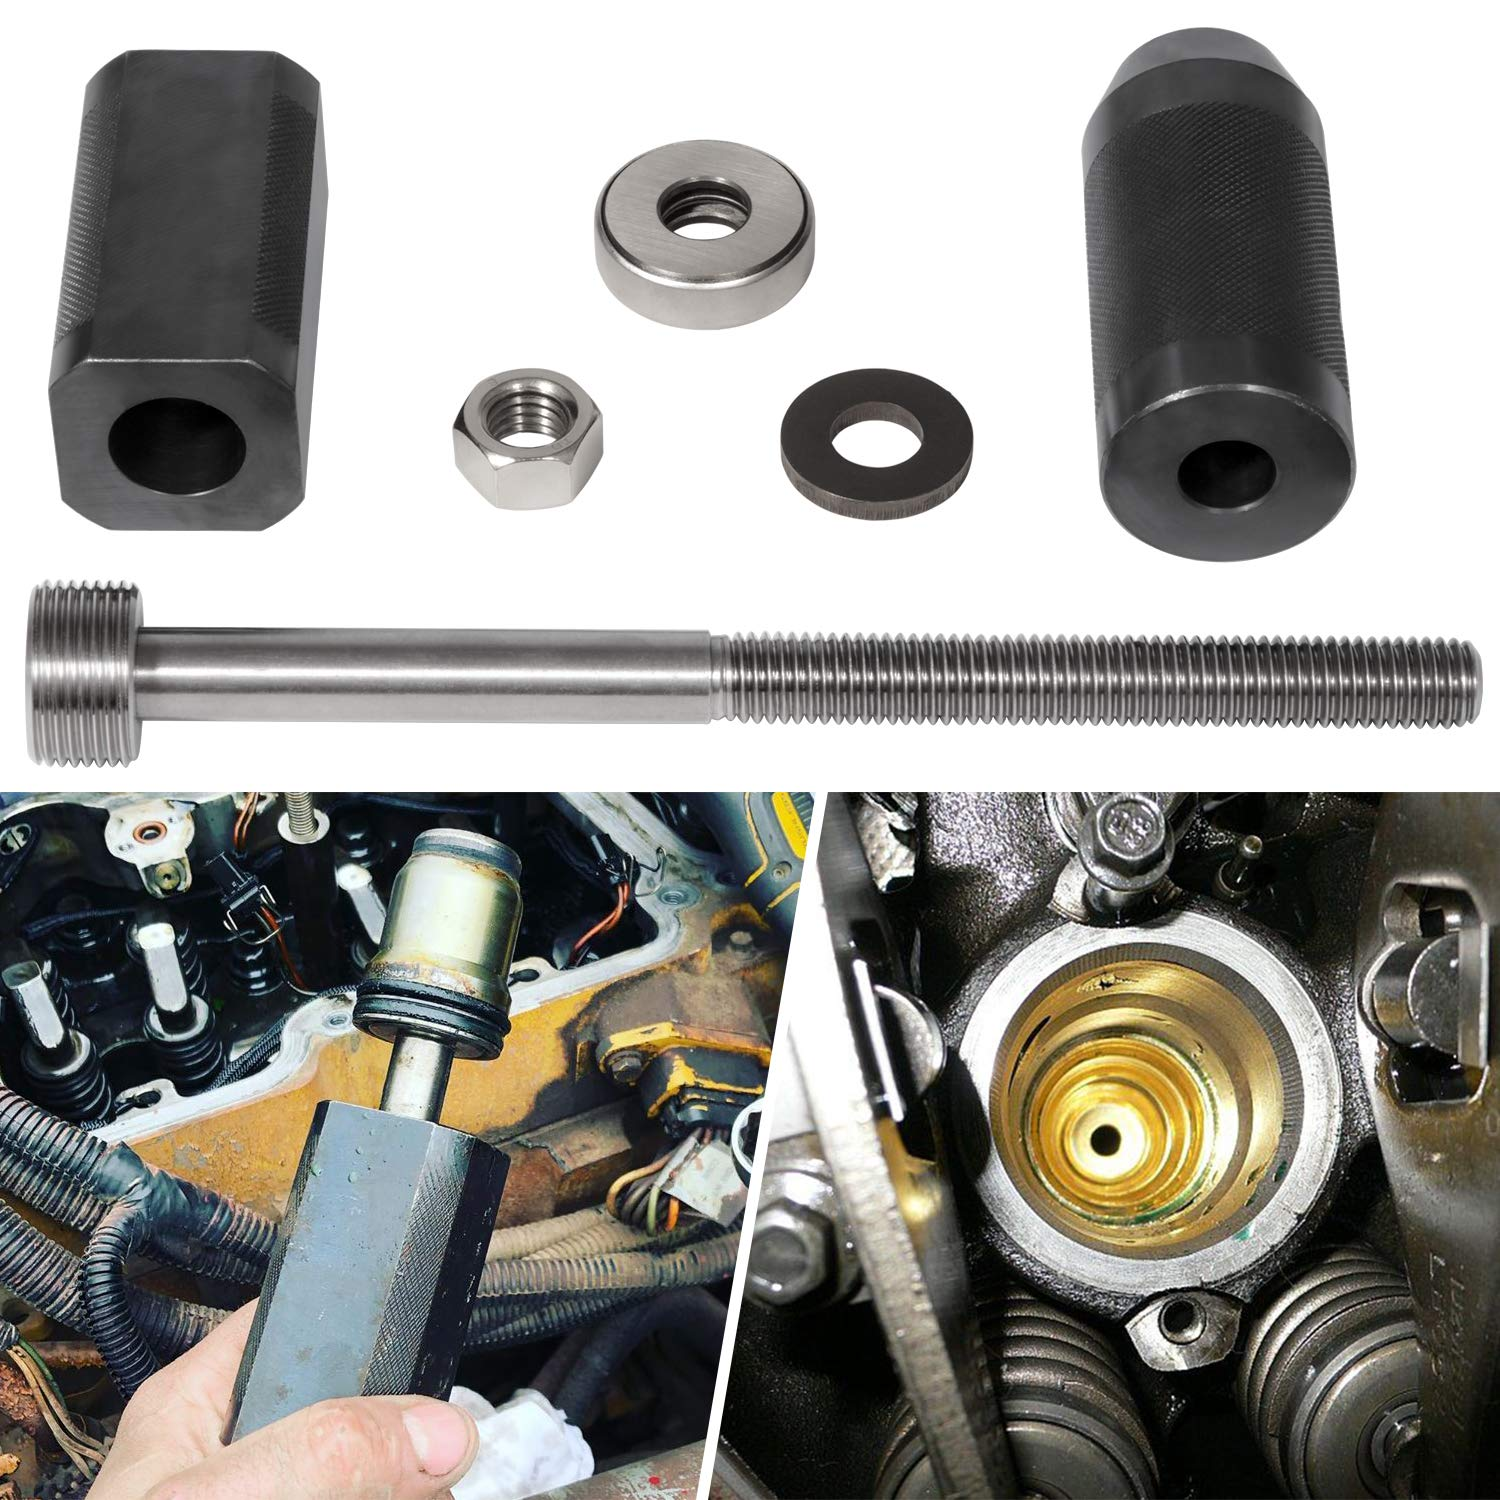 9U-6891 Injector Sleeve Remover Installer Set-Tools Kit For Caterpillar 3406E C10 C12 C15 C16 C18 Engines